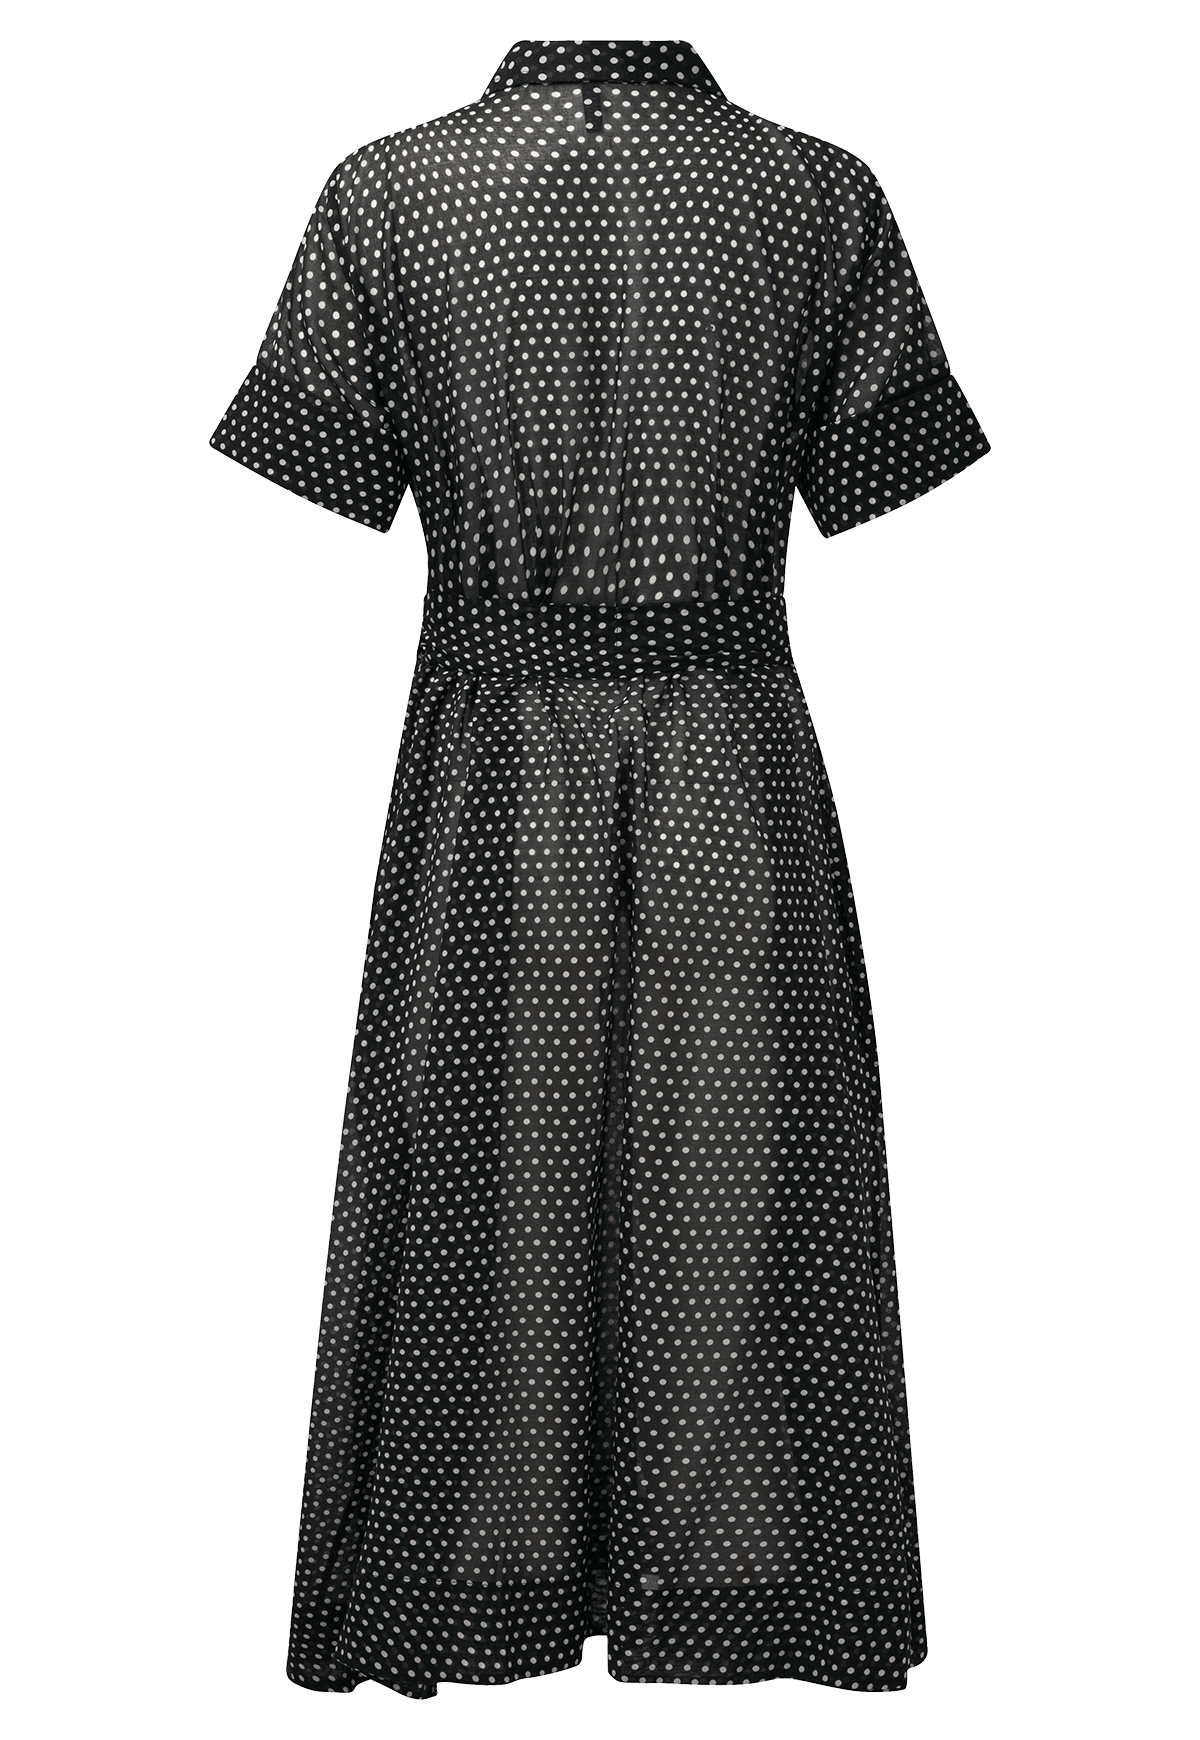 93e125e787b BLACK POLKA DOT SHIRT DRESS – Lisa Marie Fernandez